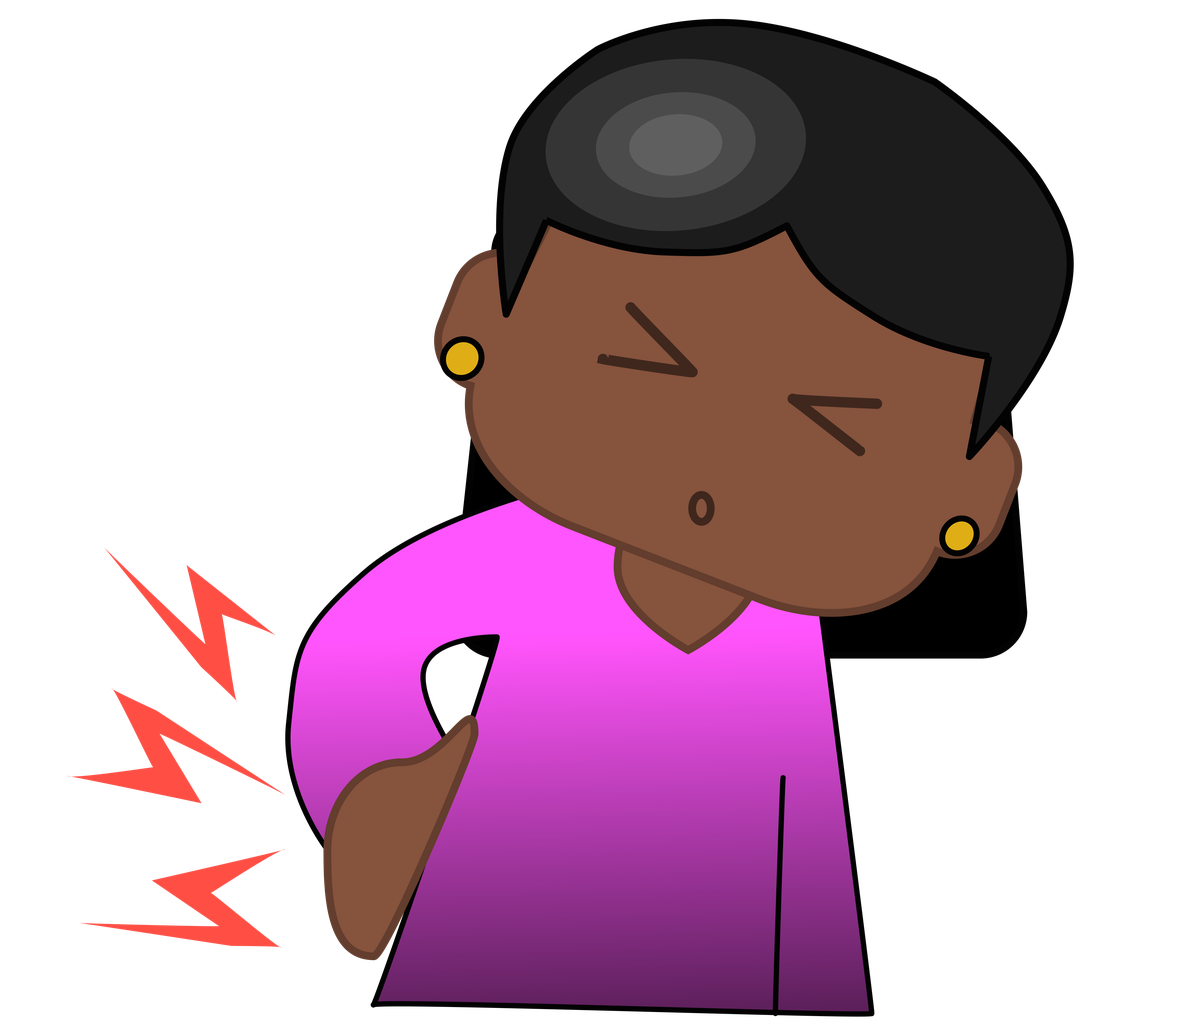 Dancing girl emoji png. Grandmother creates to better